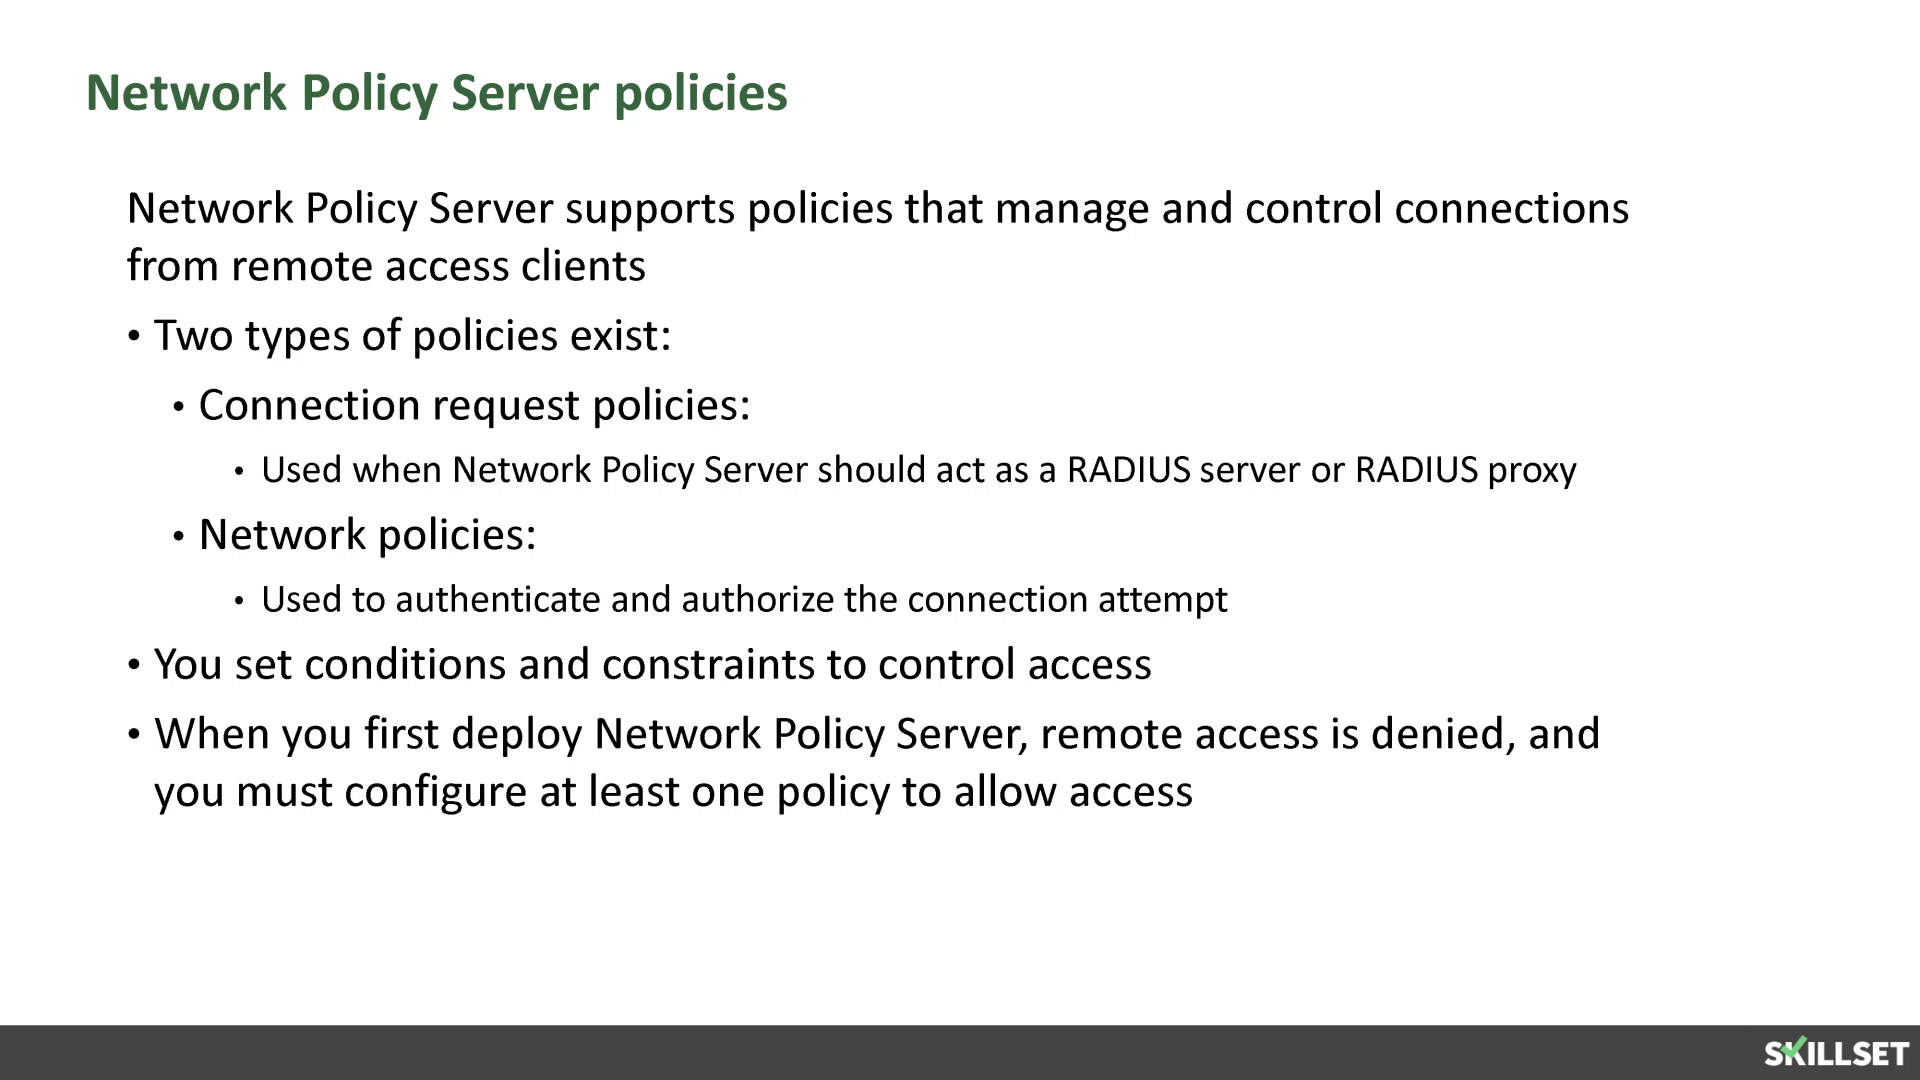 To deploy NPS as a RADIUS server or a RADIUS proxy, you must ...